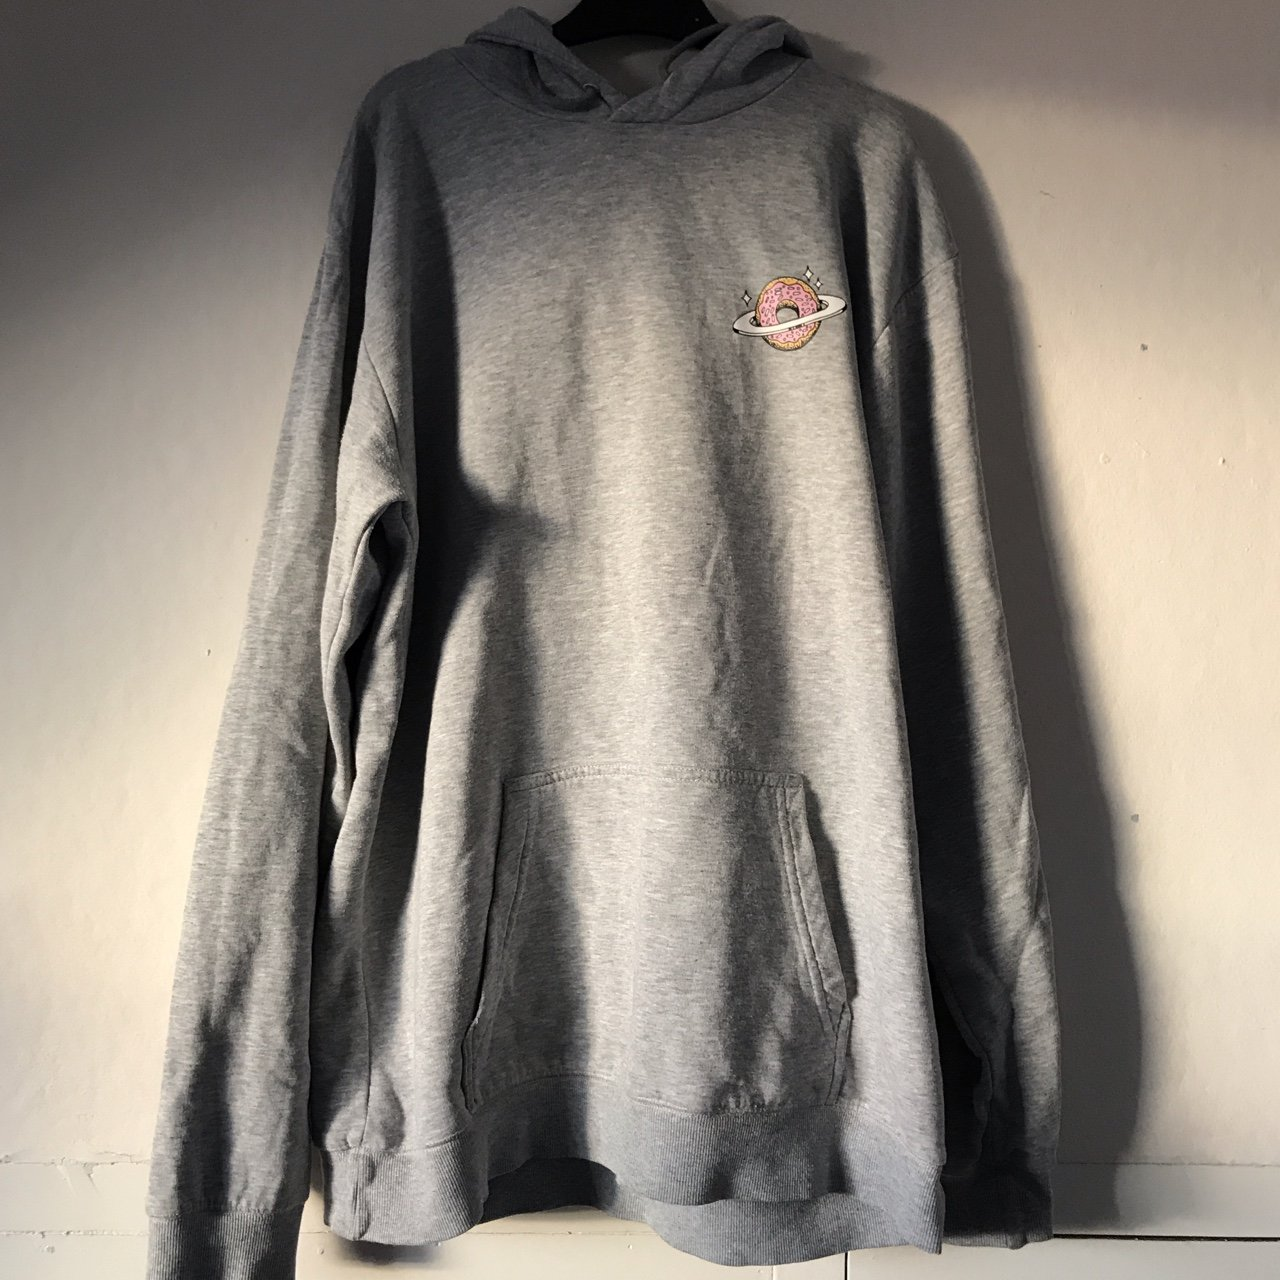 skate cafe grey hoodie similar to. Sold 5e718d0f8